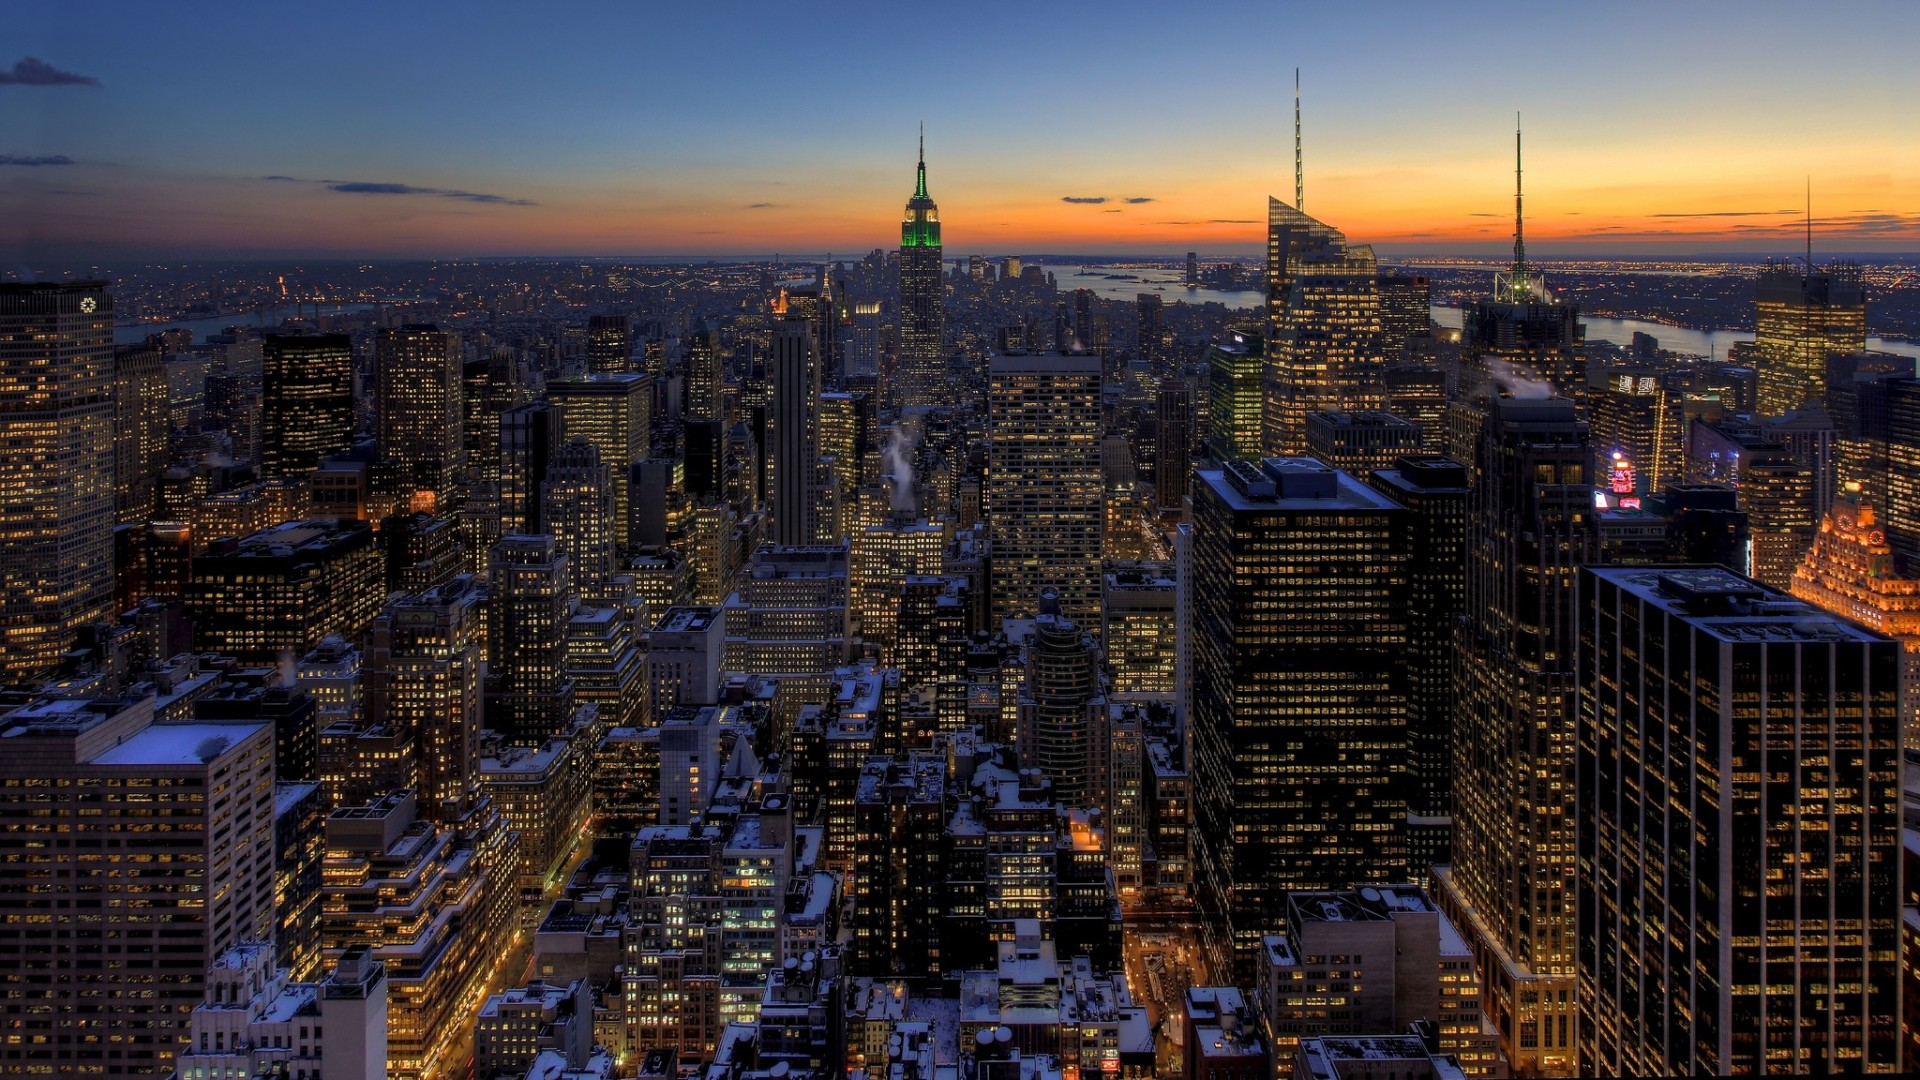 New york city skyline wallpapers high quality download free - New york skyline computer wallpaper ...